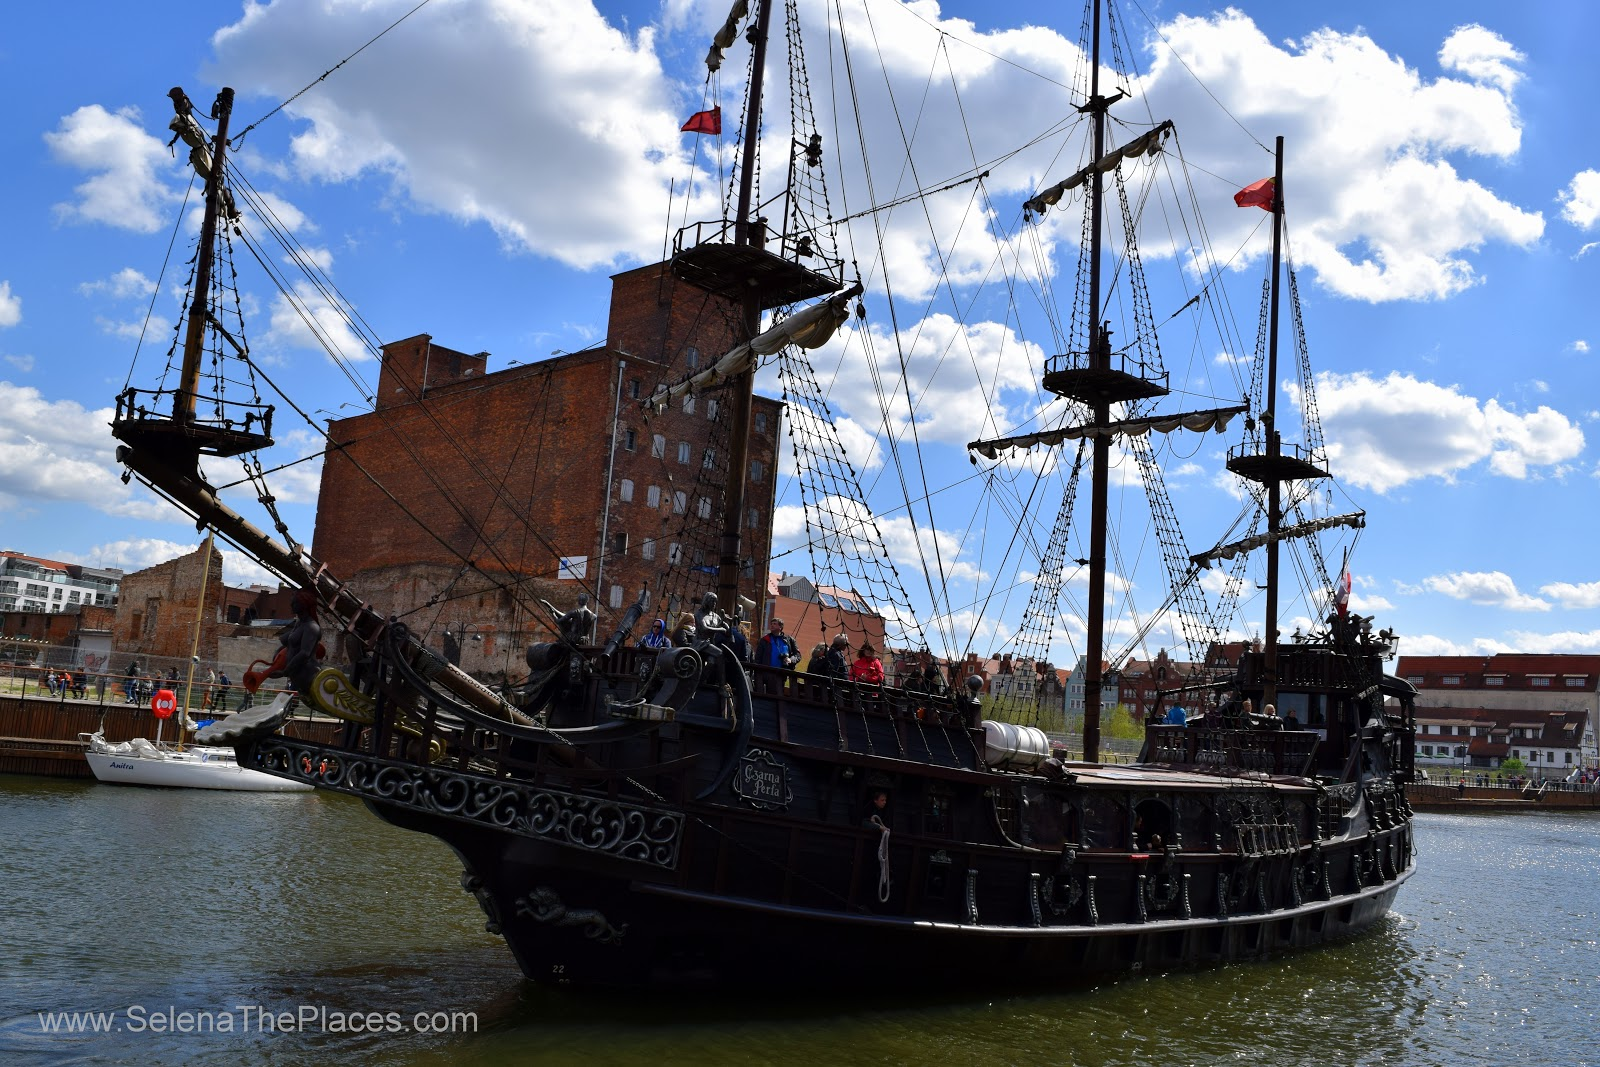 Pirate Cruise in Gdansk, Poland